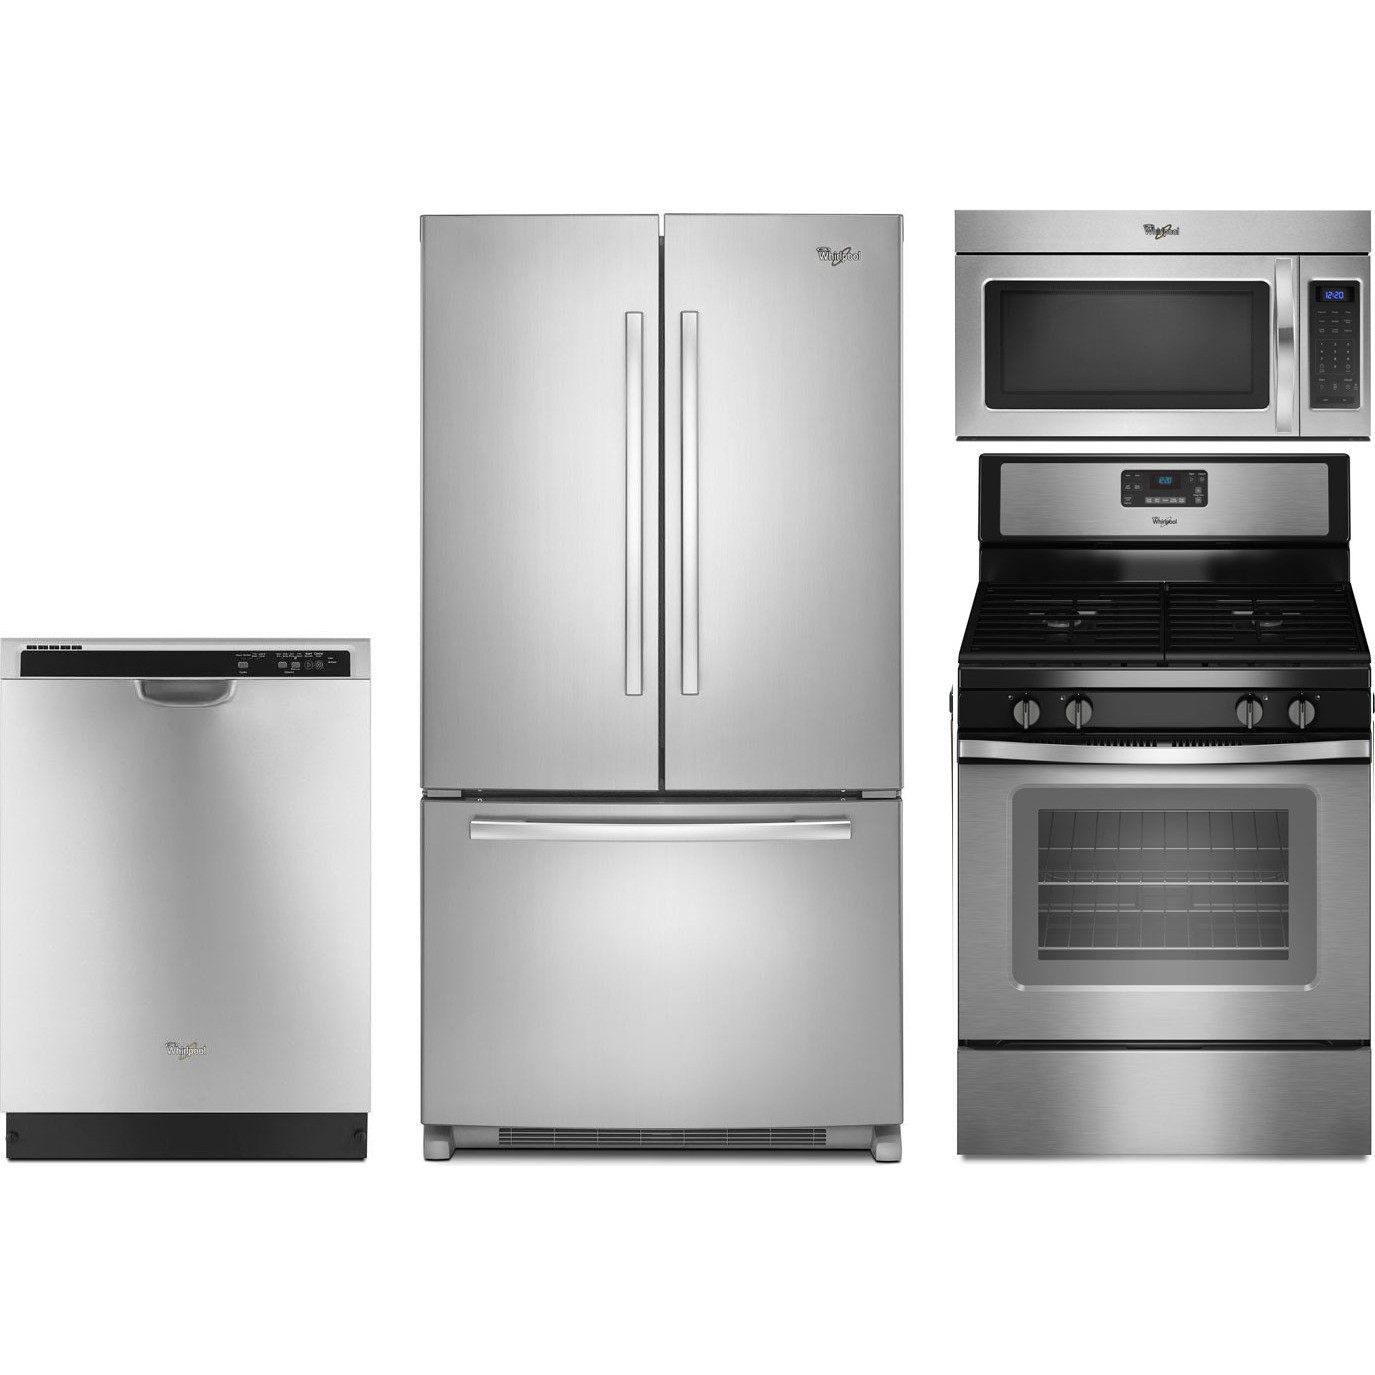 Whirlpool 4 Piece Kitchen Package With WFG515S0ES Gas Range WRF535SMBM Refrigerator WDF520PADM